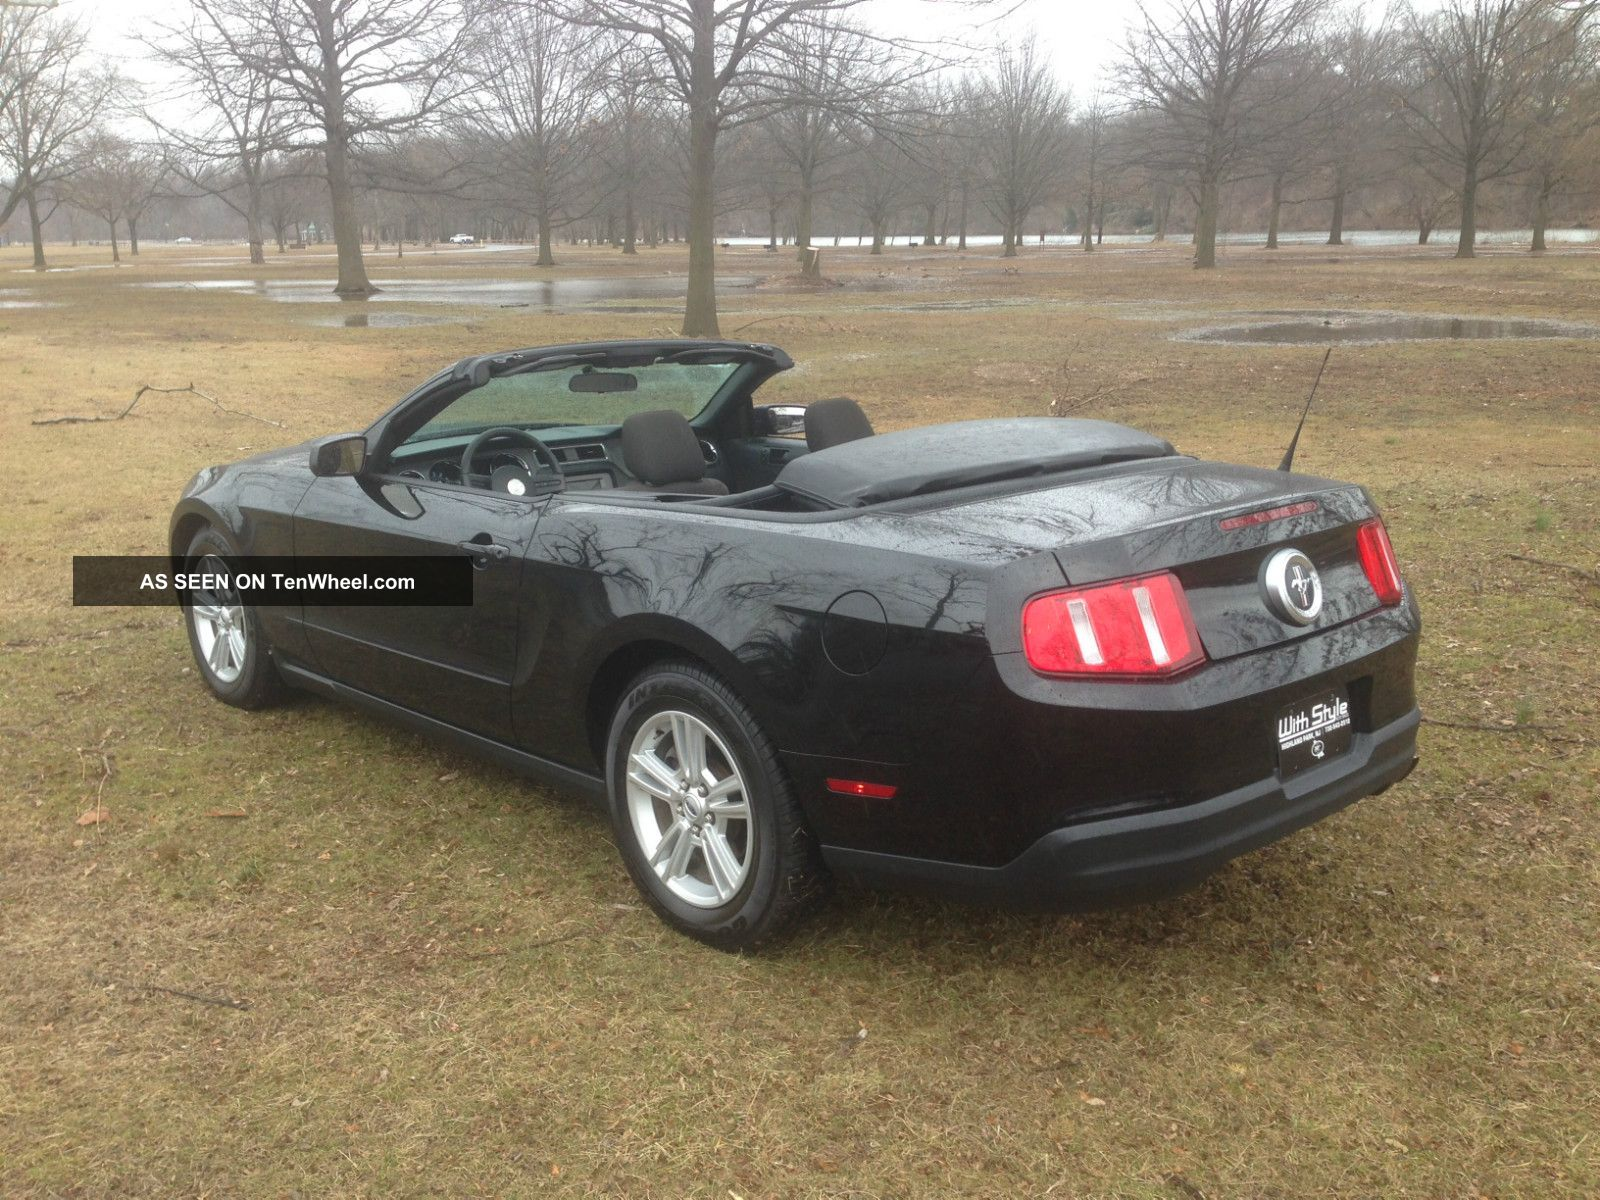 Black Ford Mustang Convertible Model Pictures to Pin on Pinterest